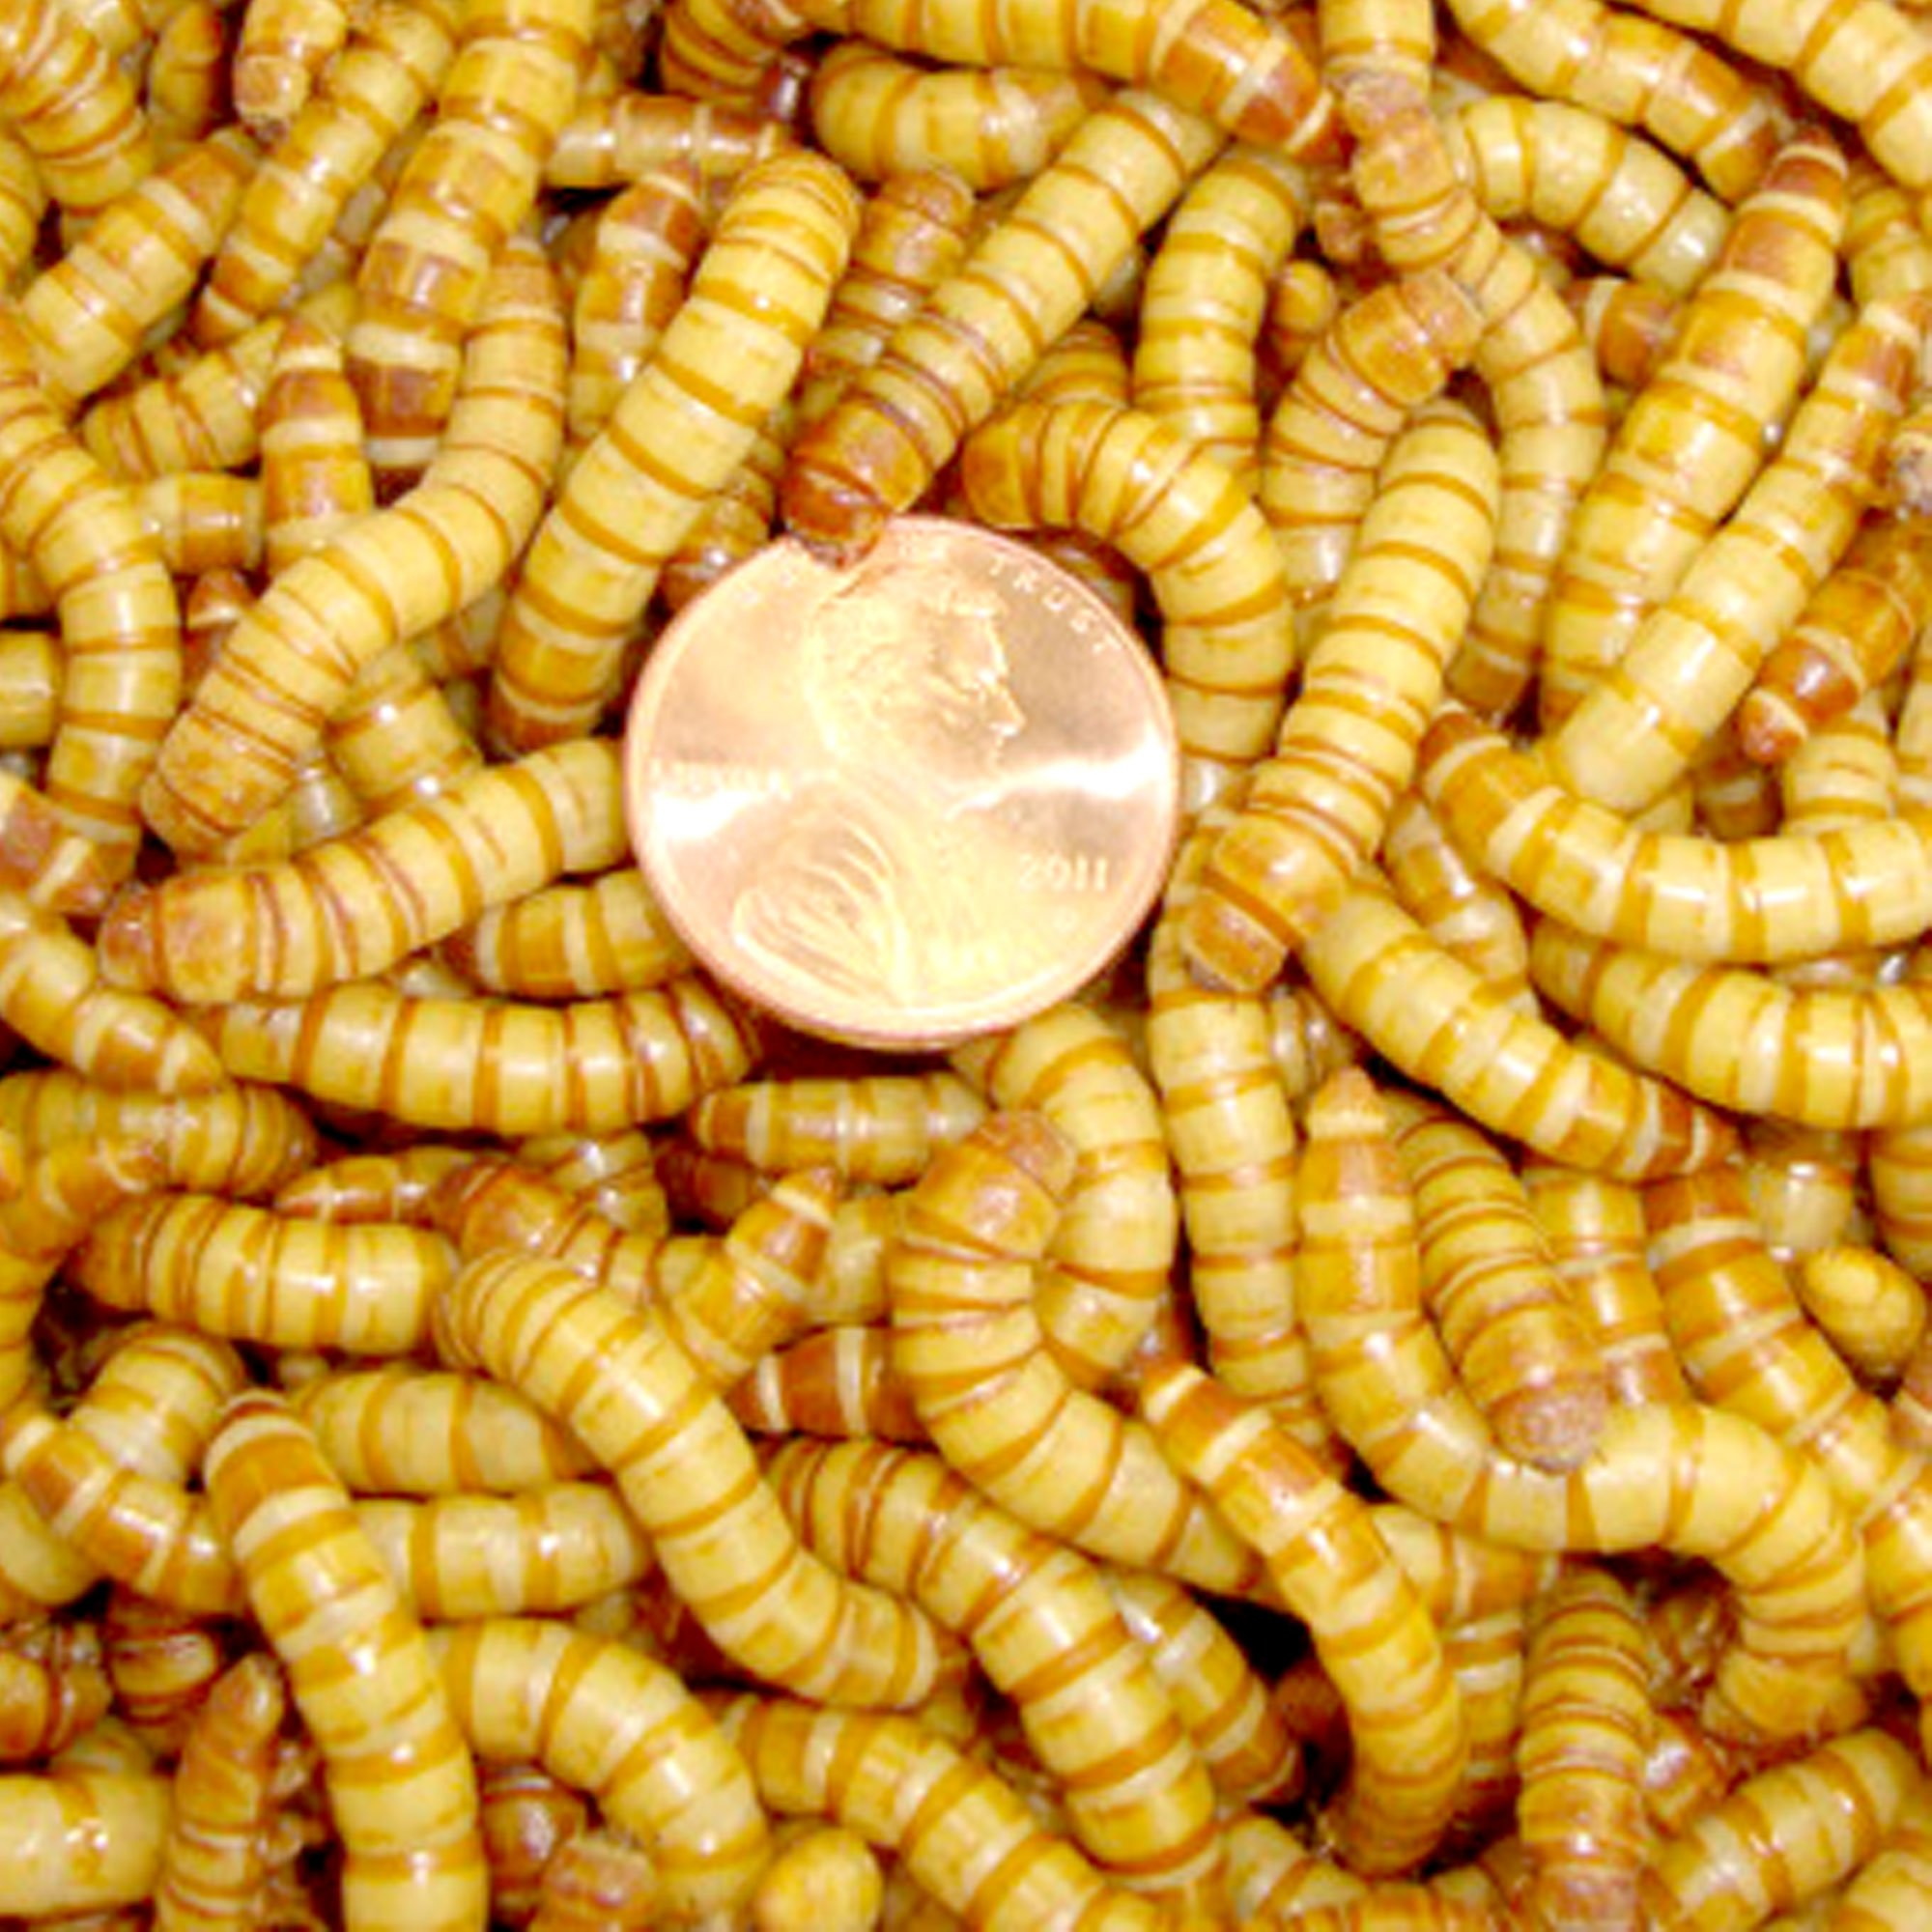 10,000ct Live Giant Mealworms, Reptile, Birds, Best Bait by Gimminy Crickets & Worms